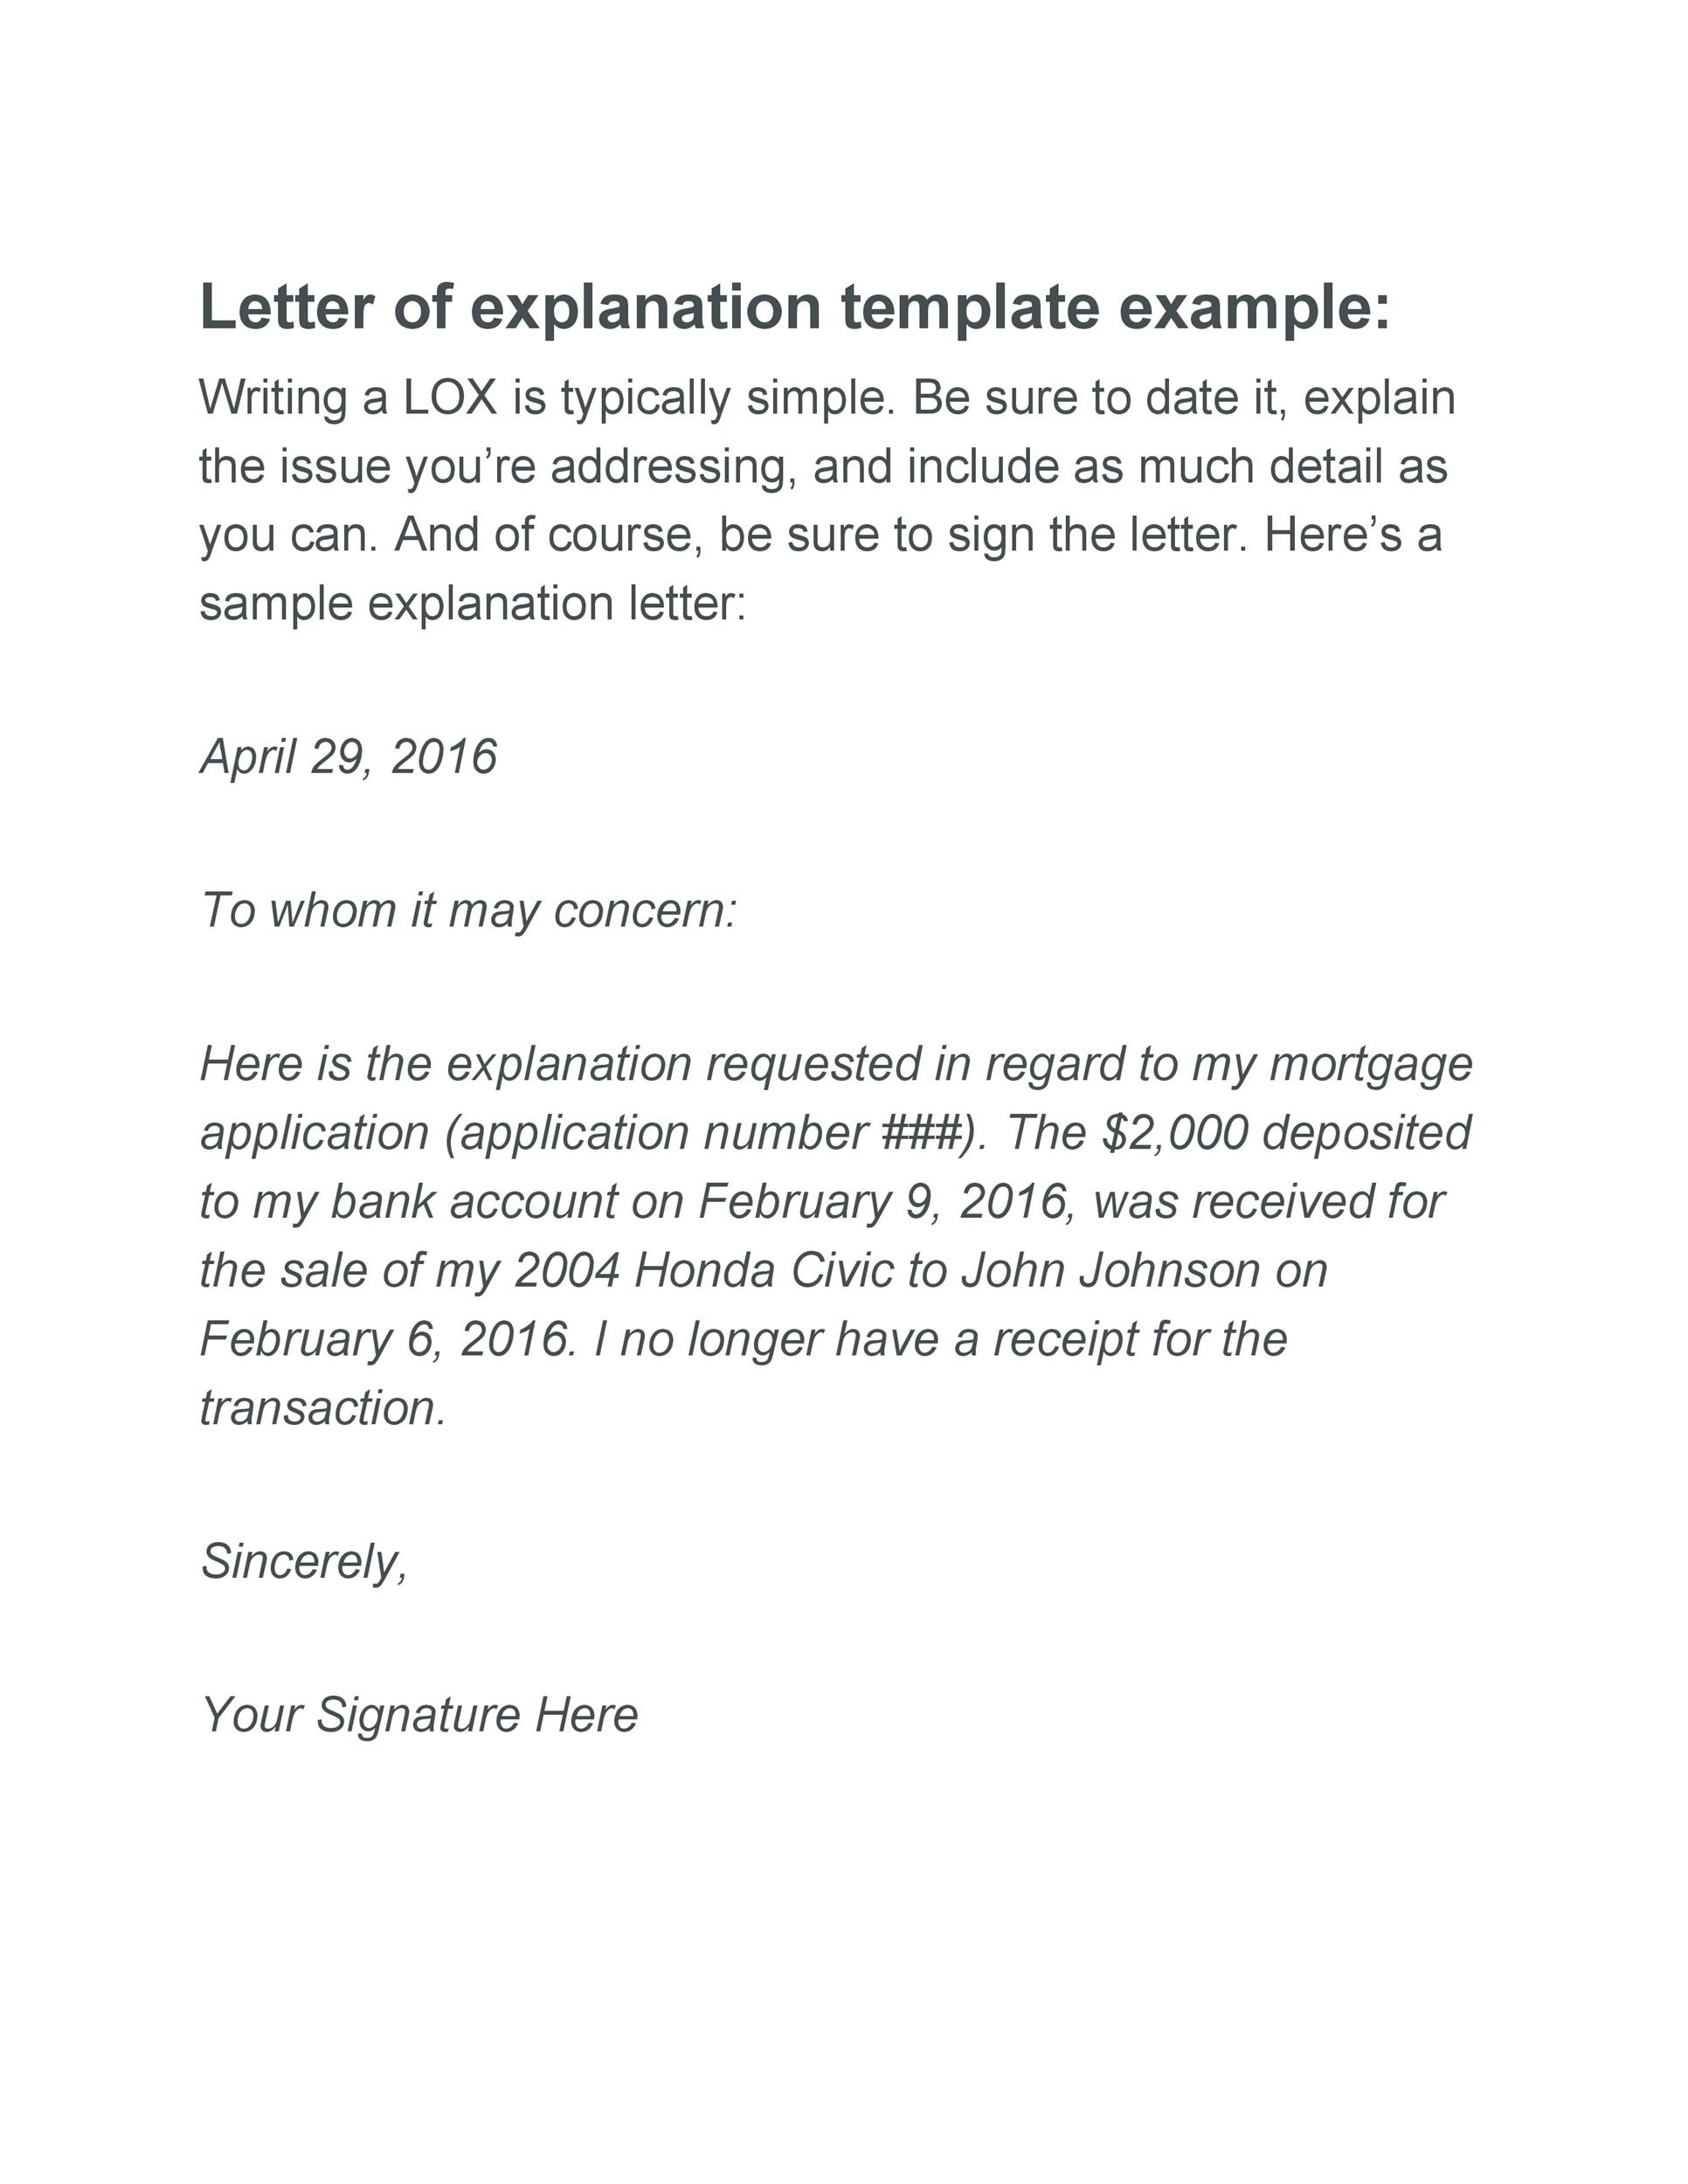 48 Letters Of Explanation Templates (Mortgage, Derogatory Credit)